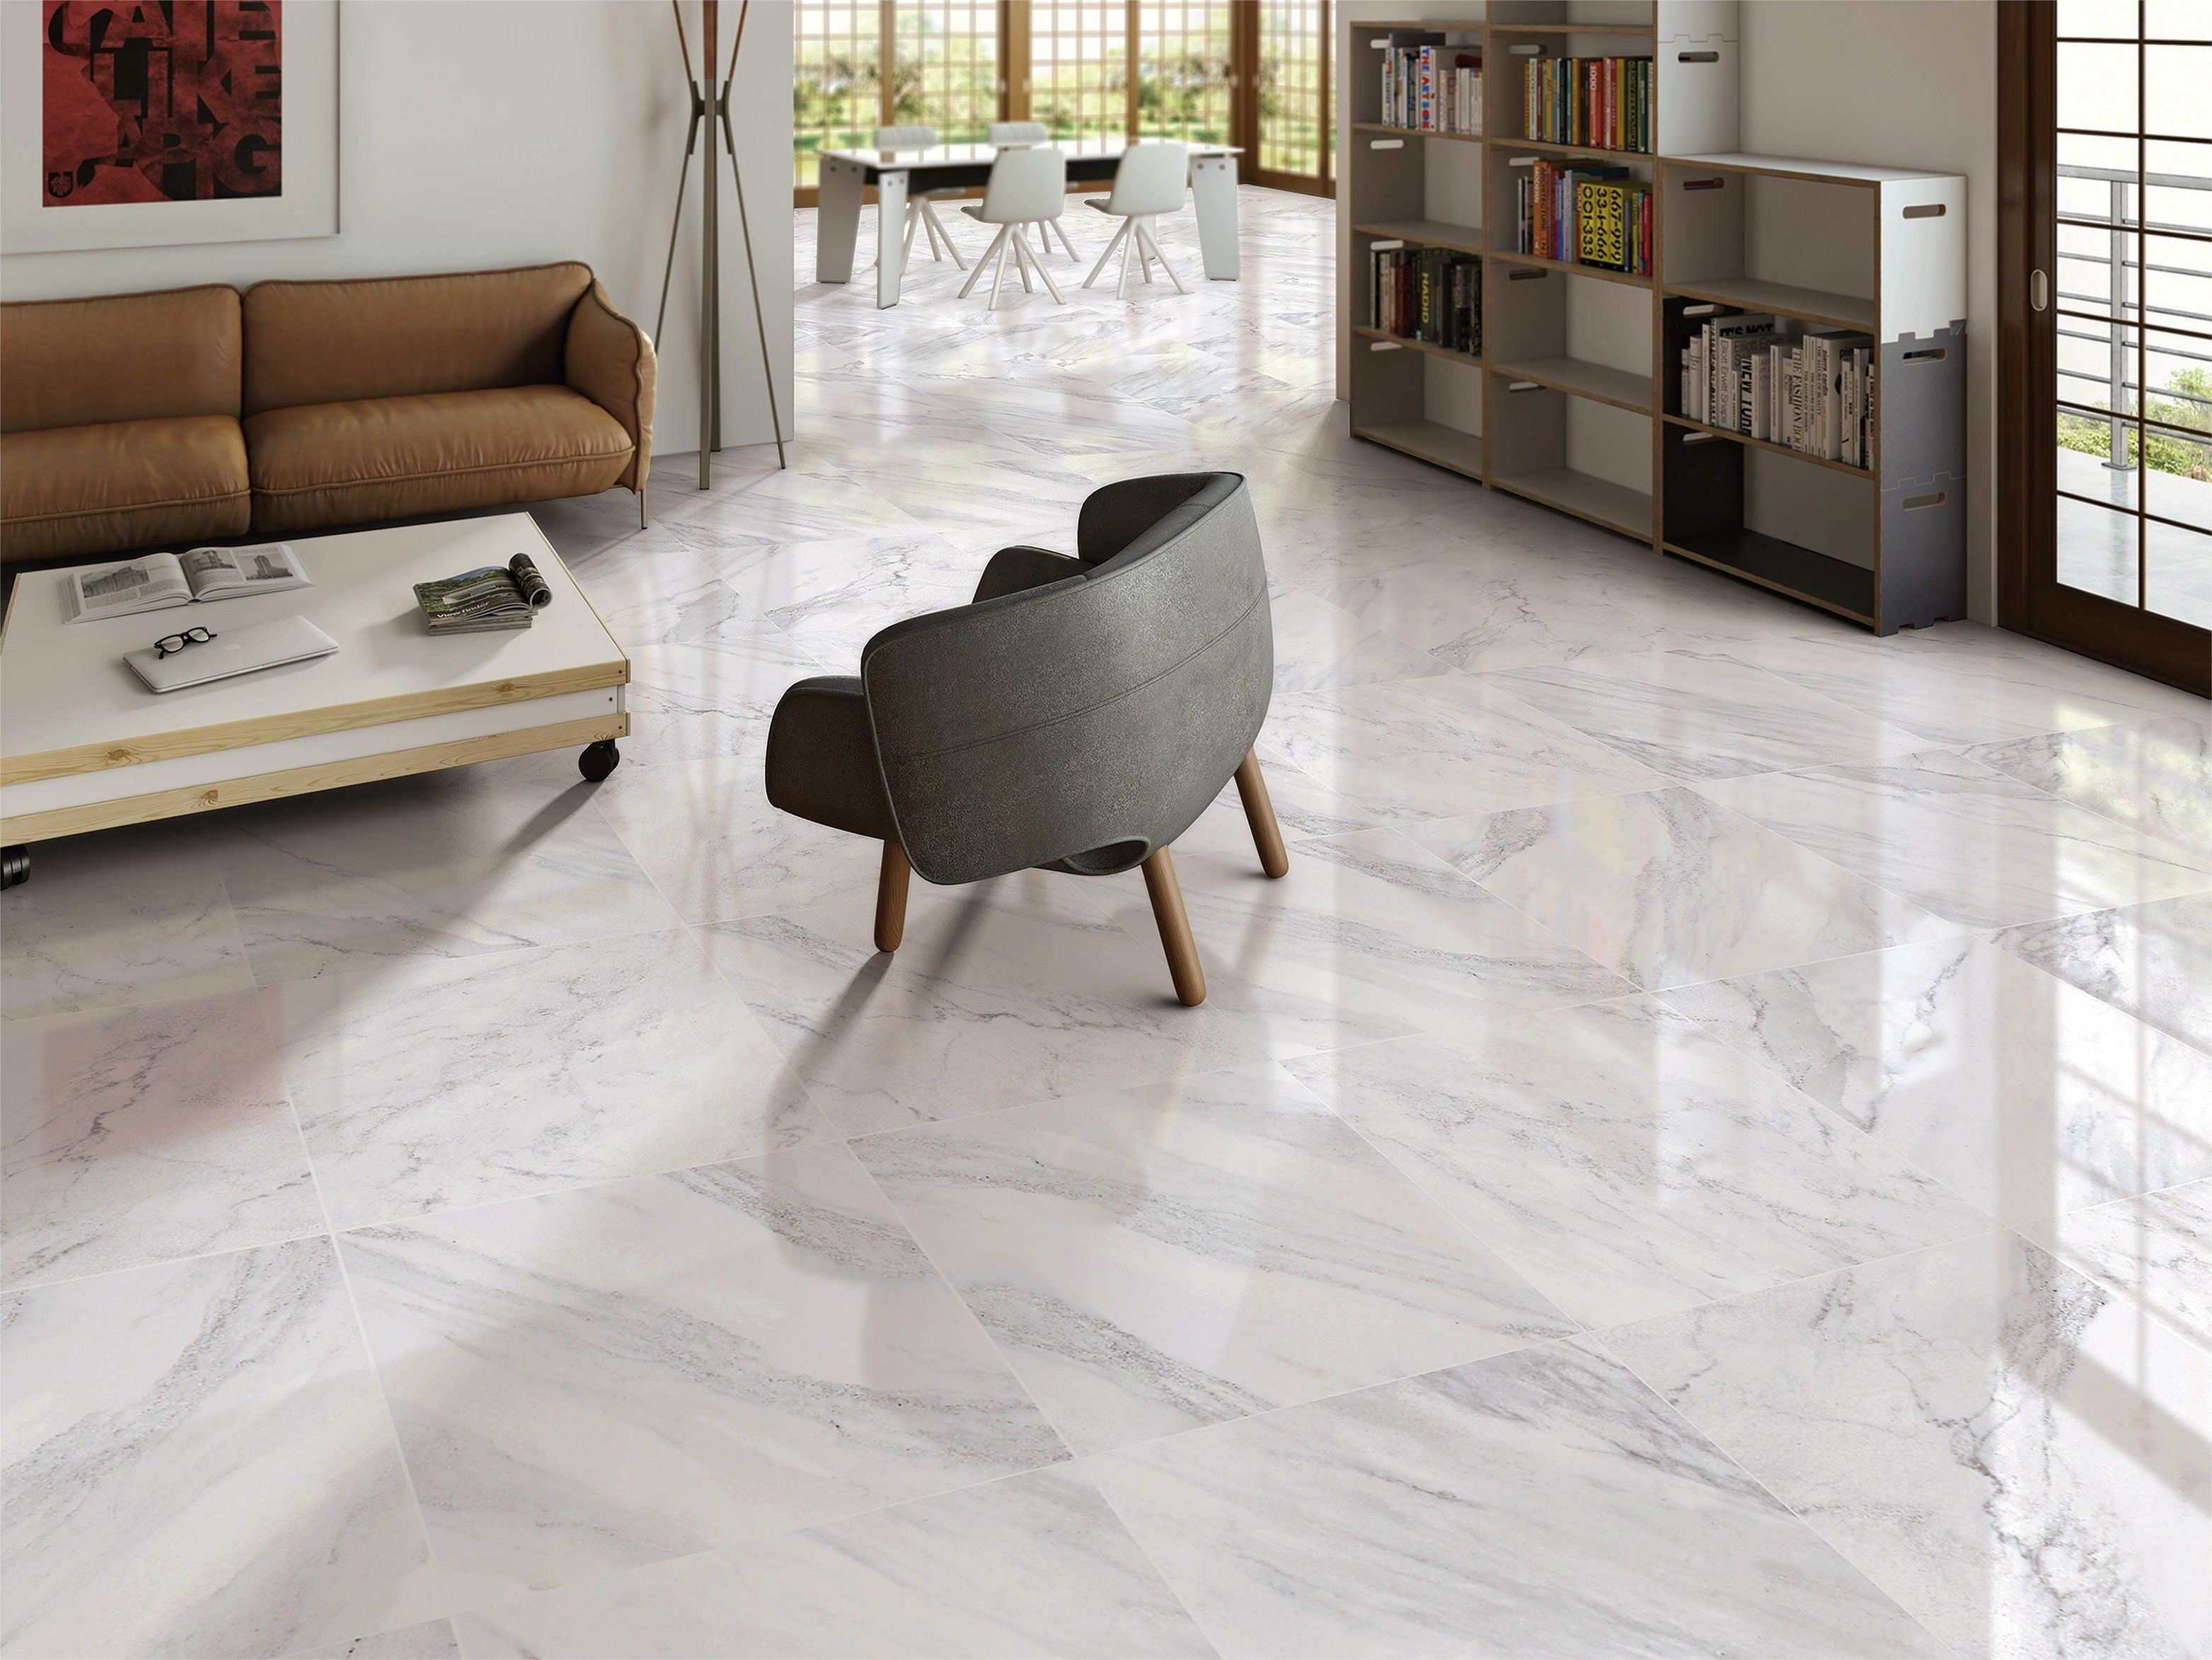 Reflective gloss white 600x600mm carrara marble effect porcelain reflective gloss white 600x600mm carrara marble effect porcelain floor tile create an uncluttered feel of dailygadgetfo Images